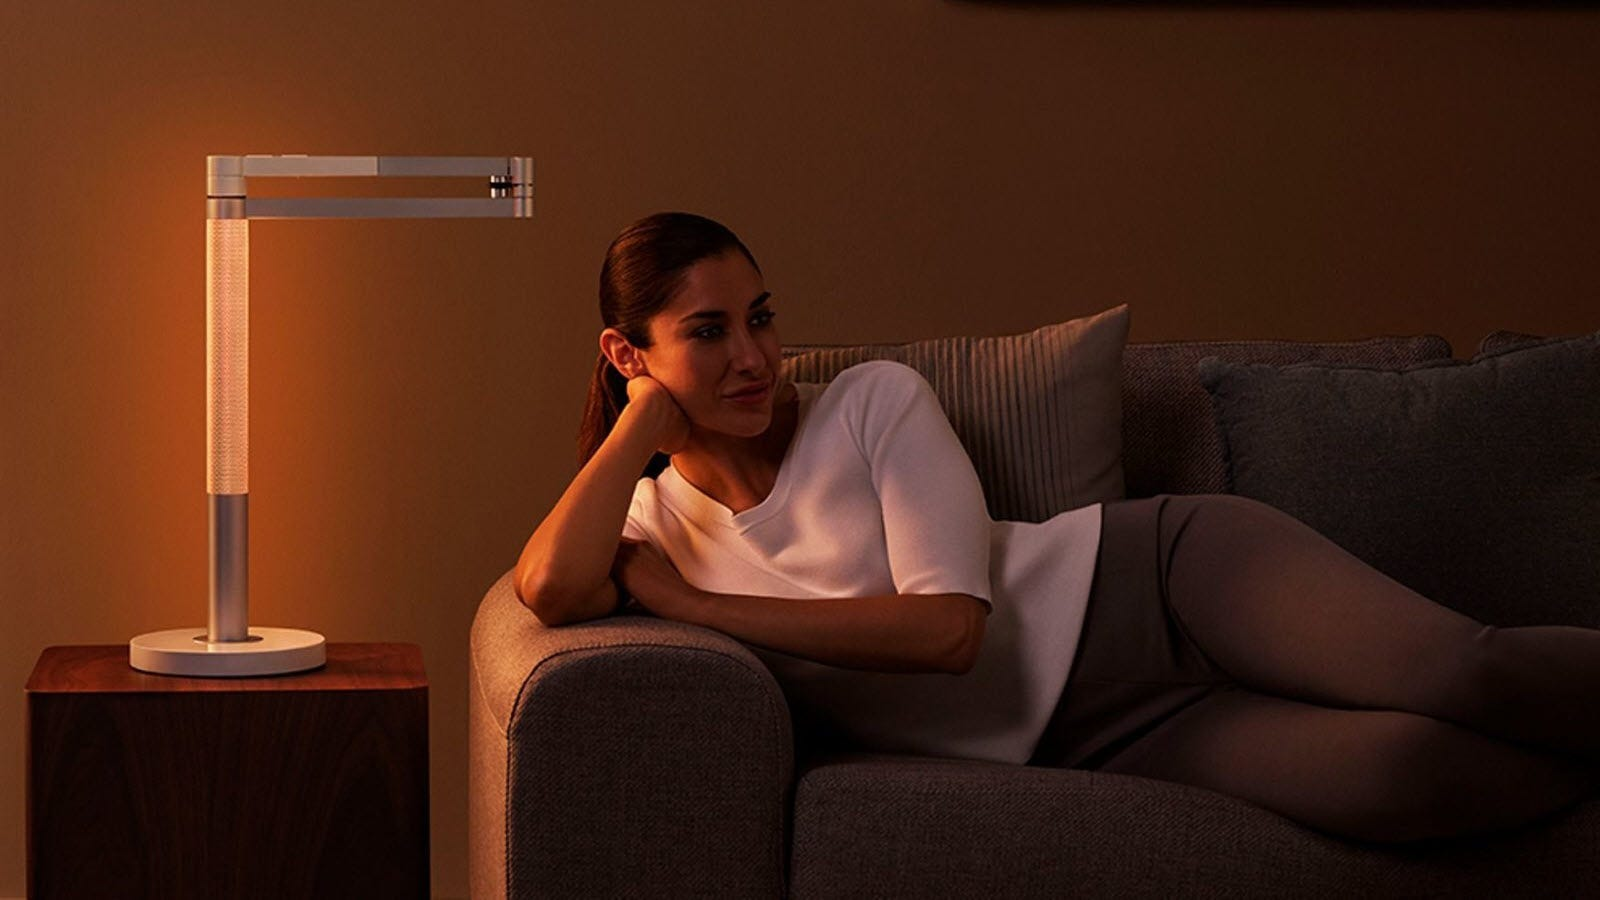 A woman laying on a couch next to the Dyson Lightcycle Morph with the head shining light through the stem.